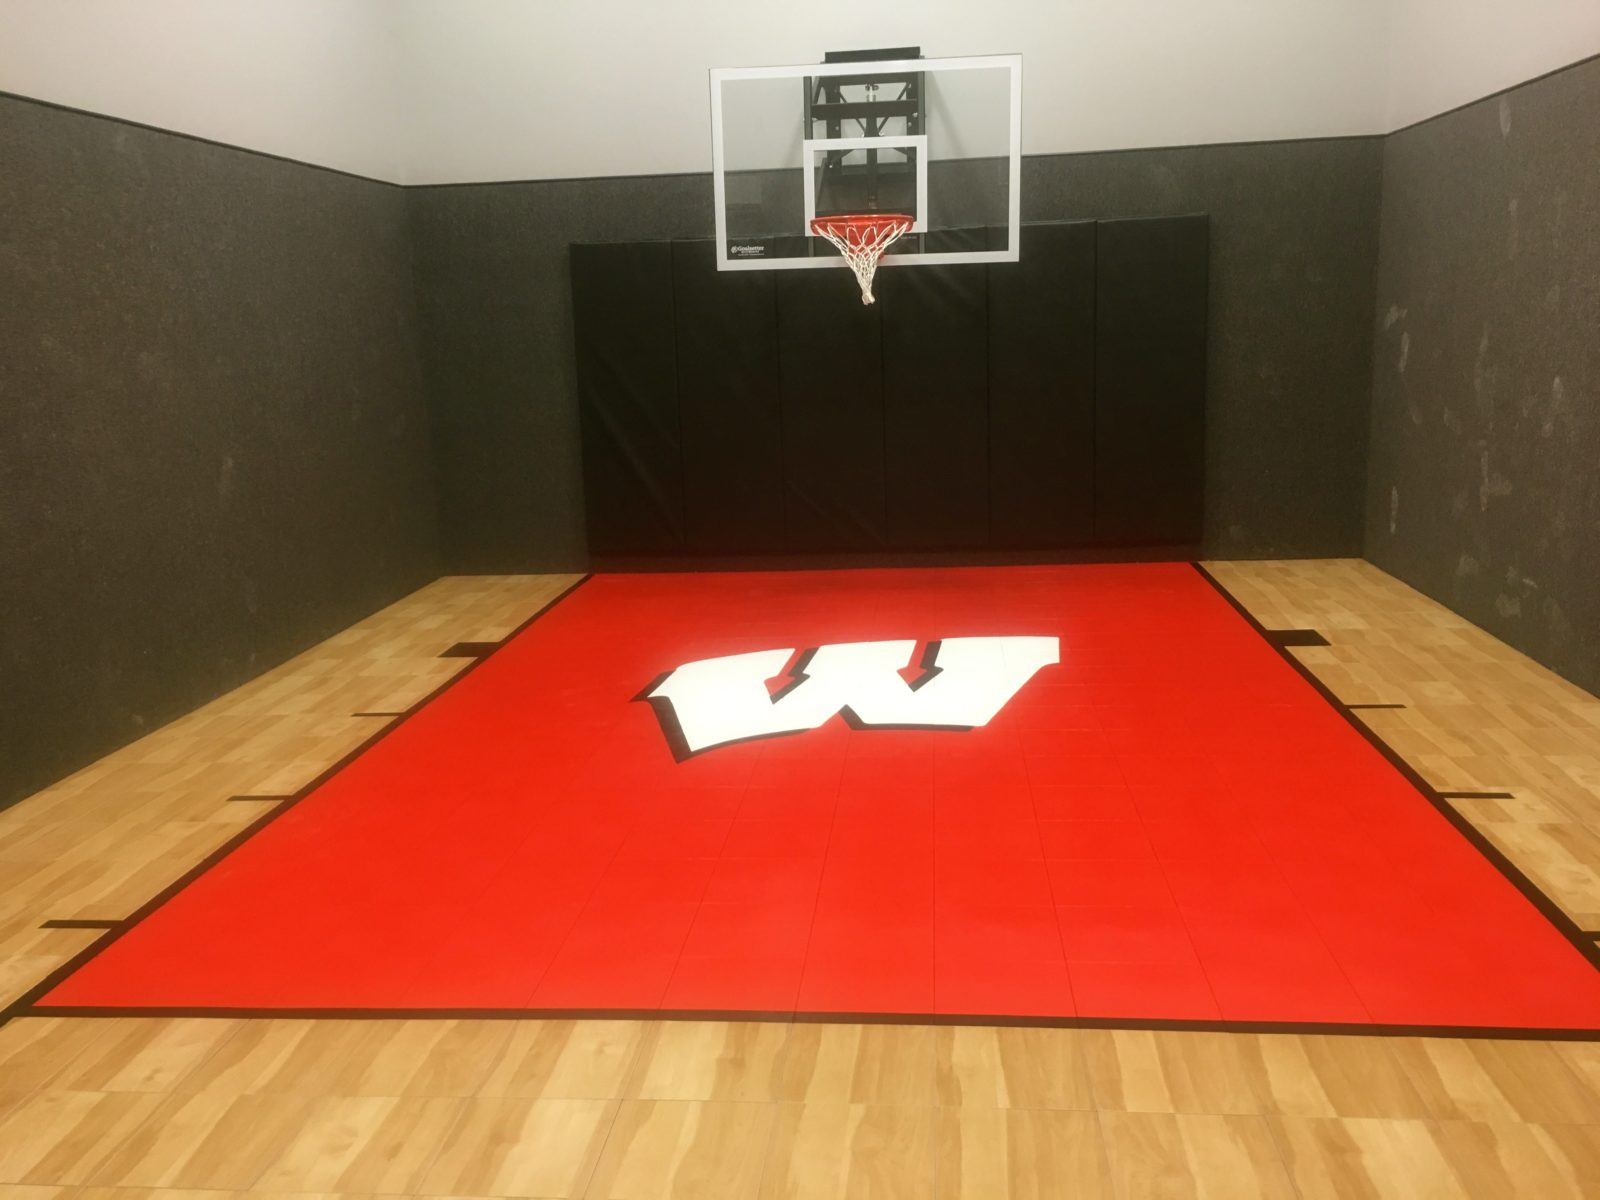 Indoor home gyms courts athletic surfaces millz house for Basketball court at home